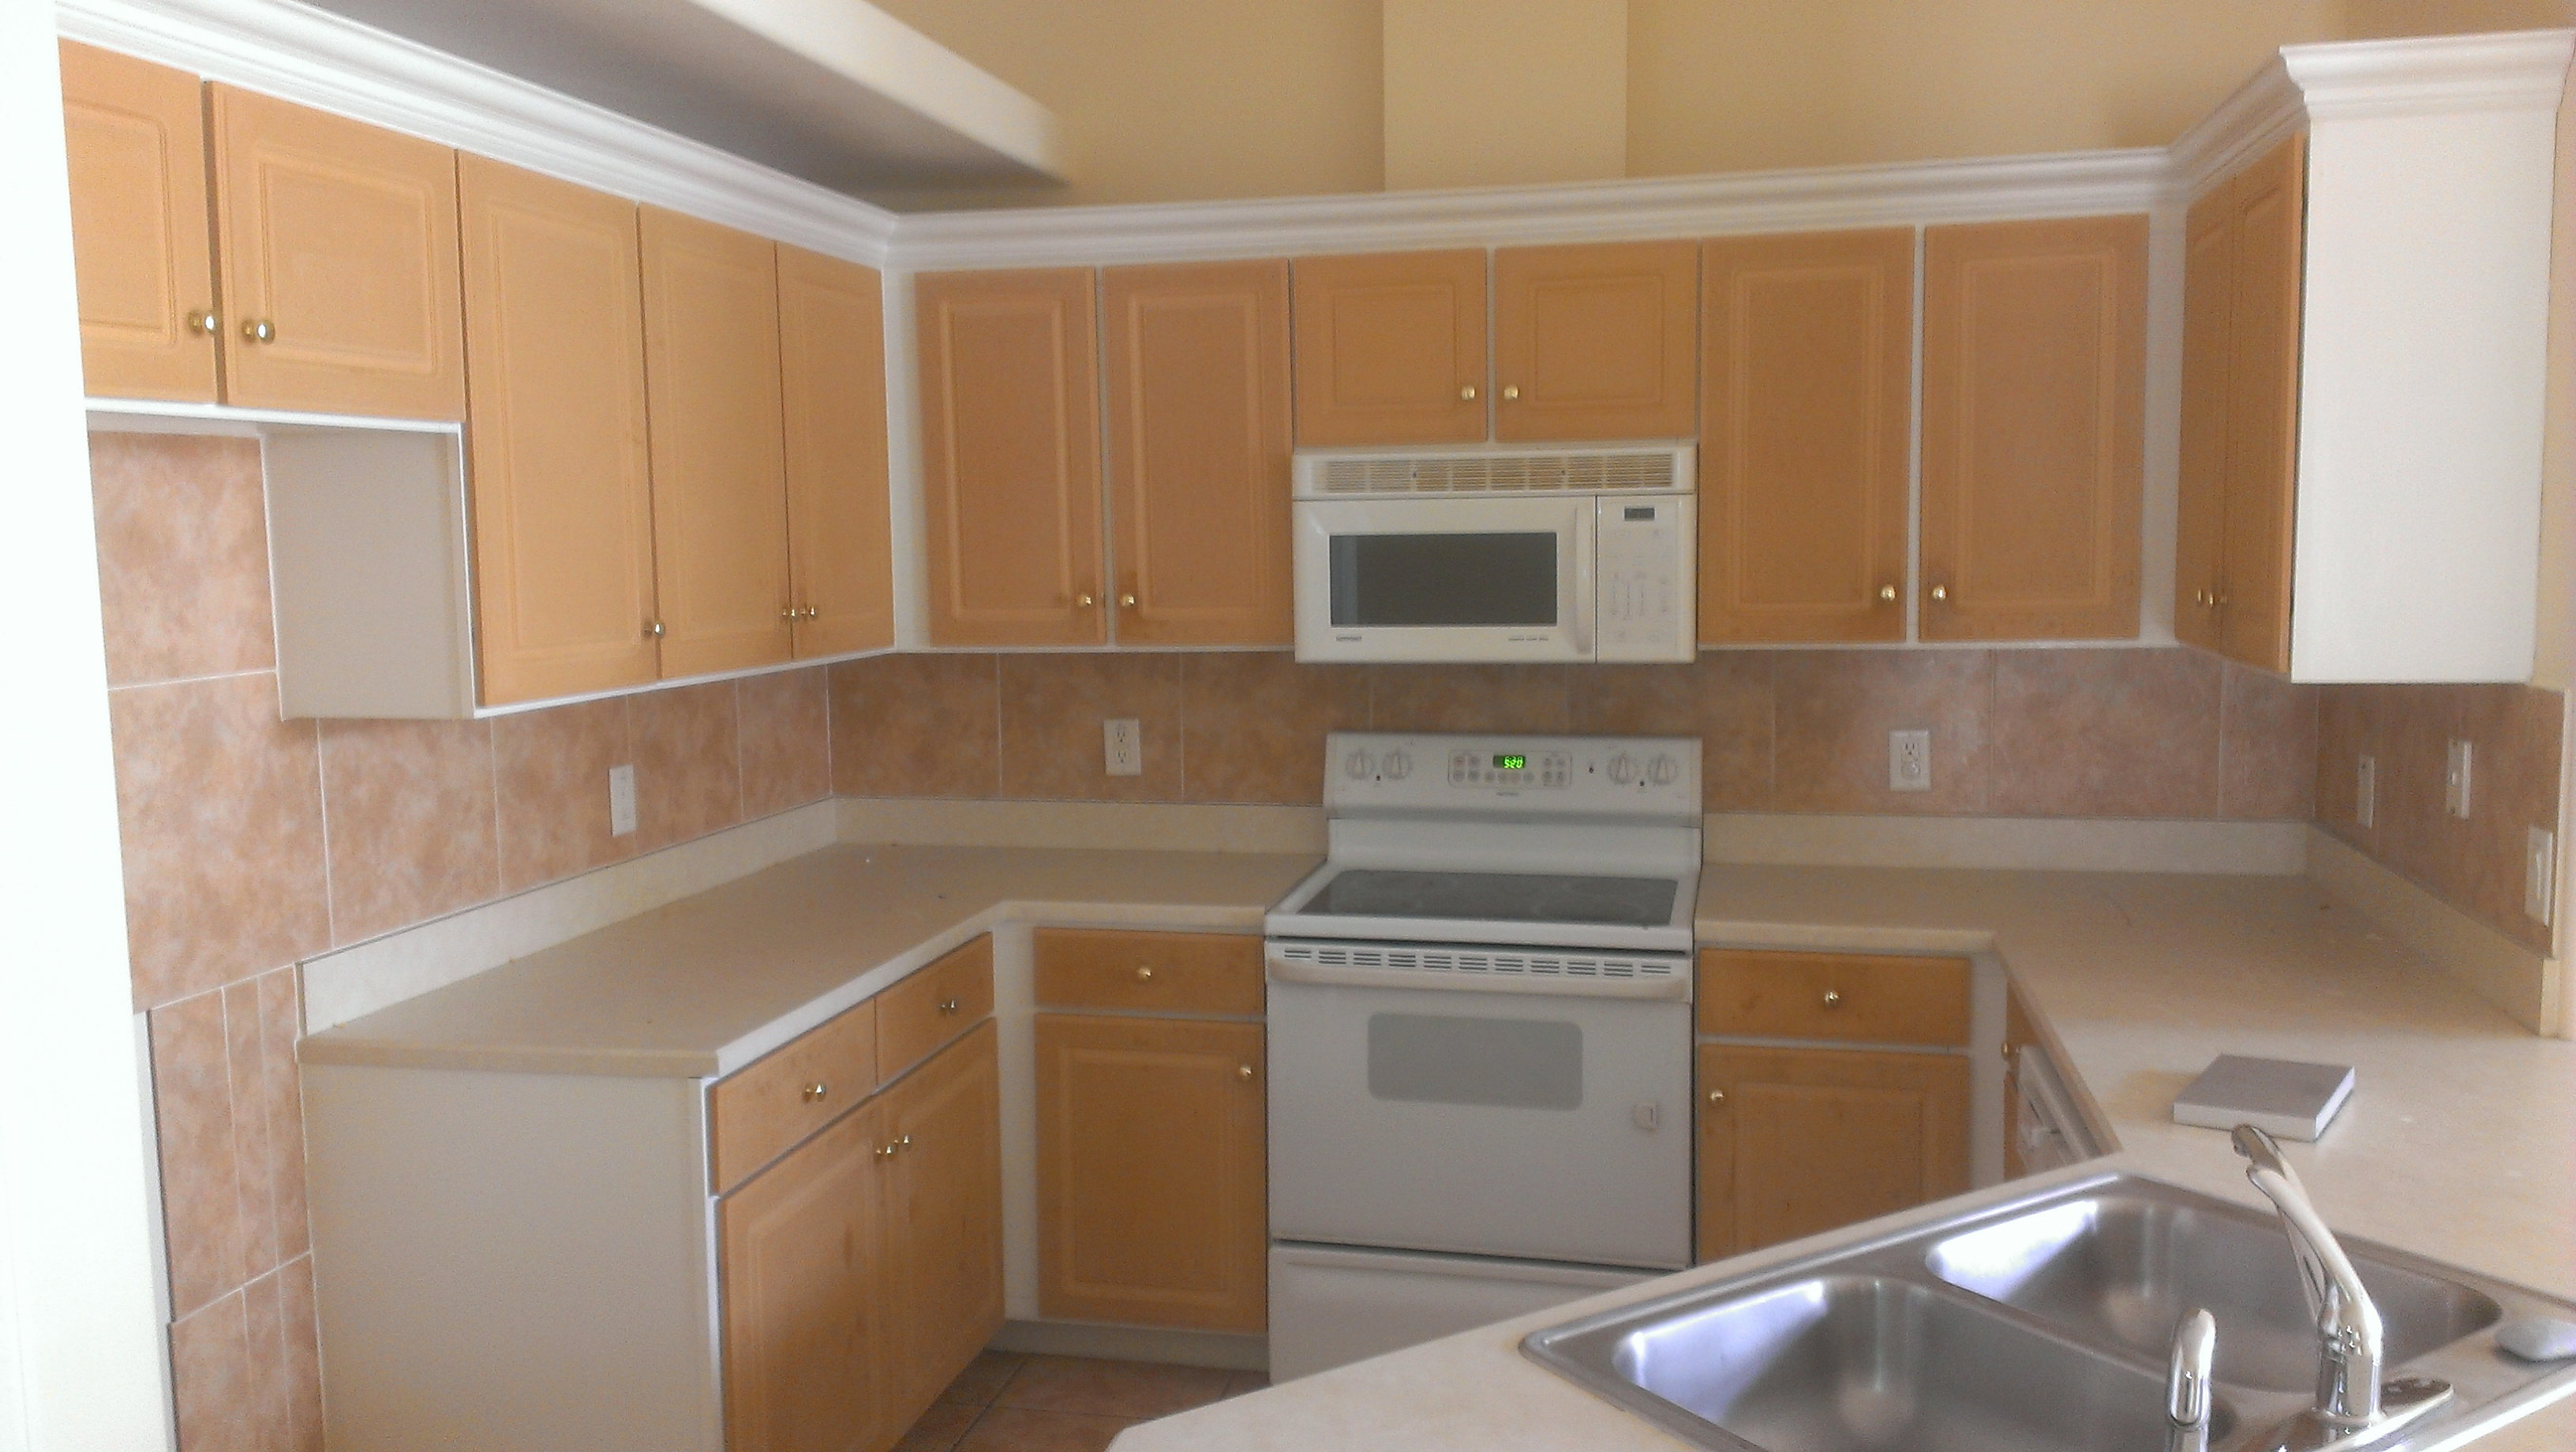 Cabinet refacing contractors in daytona beach and north for Cost to refinish cabinets